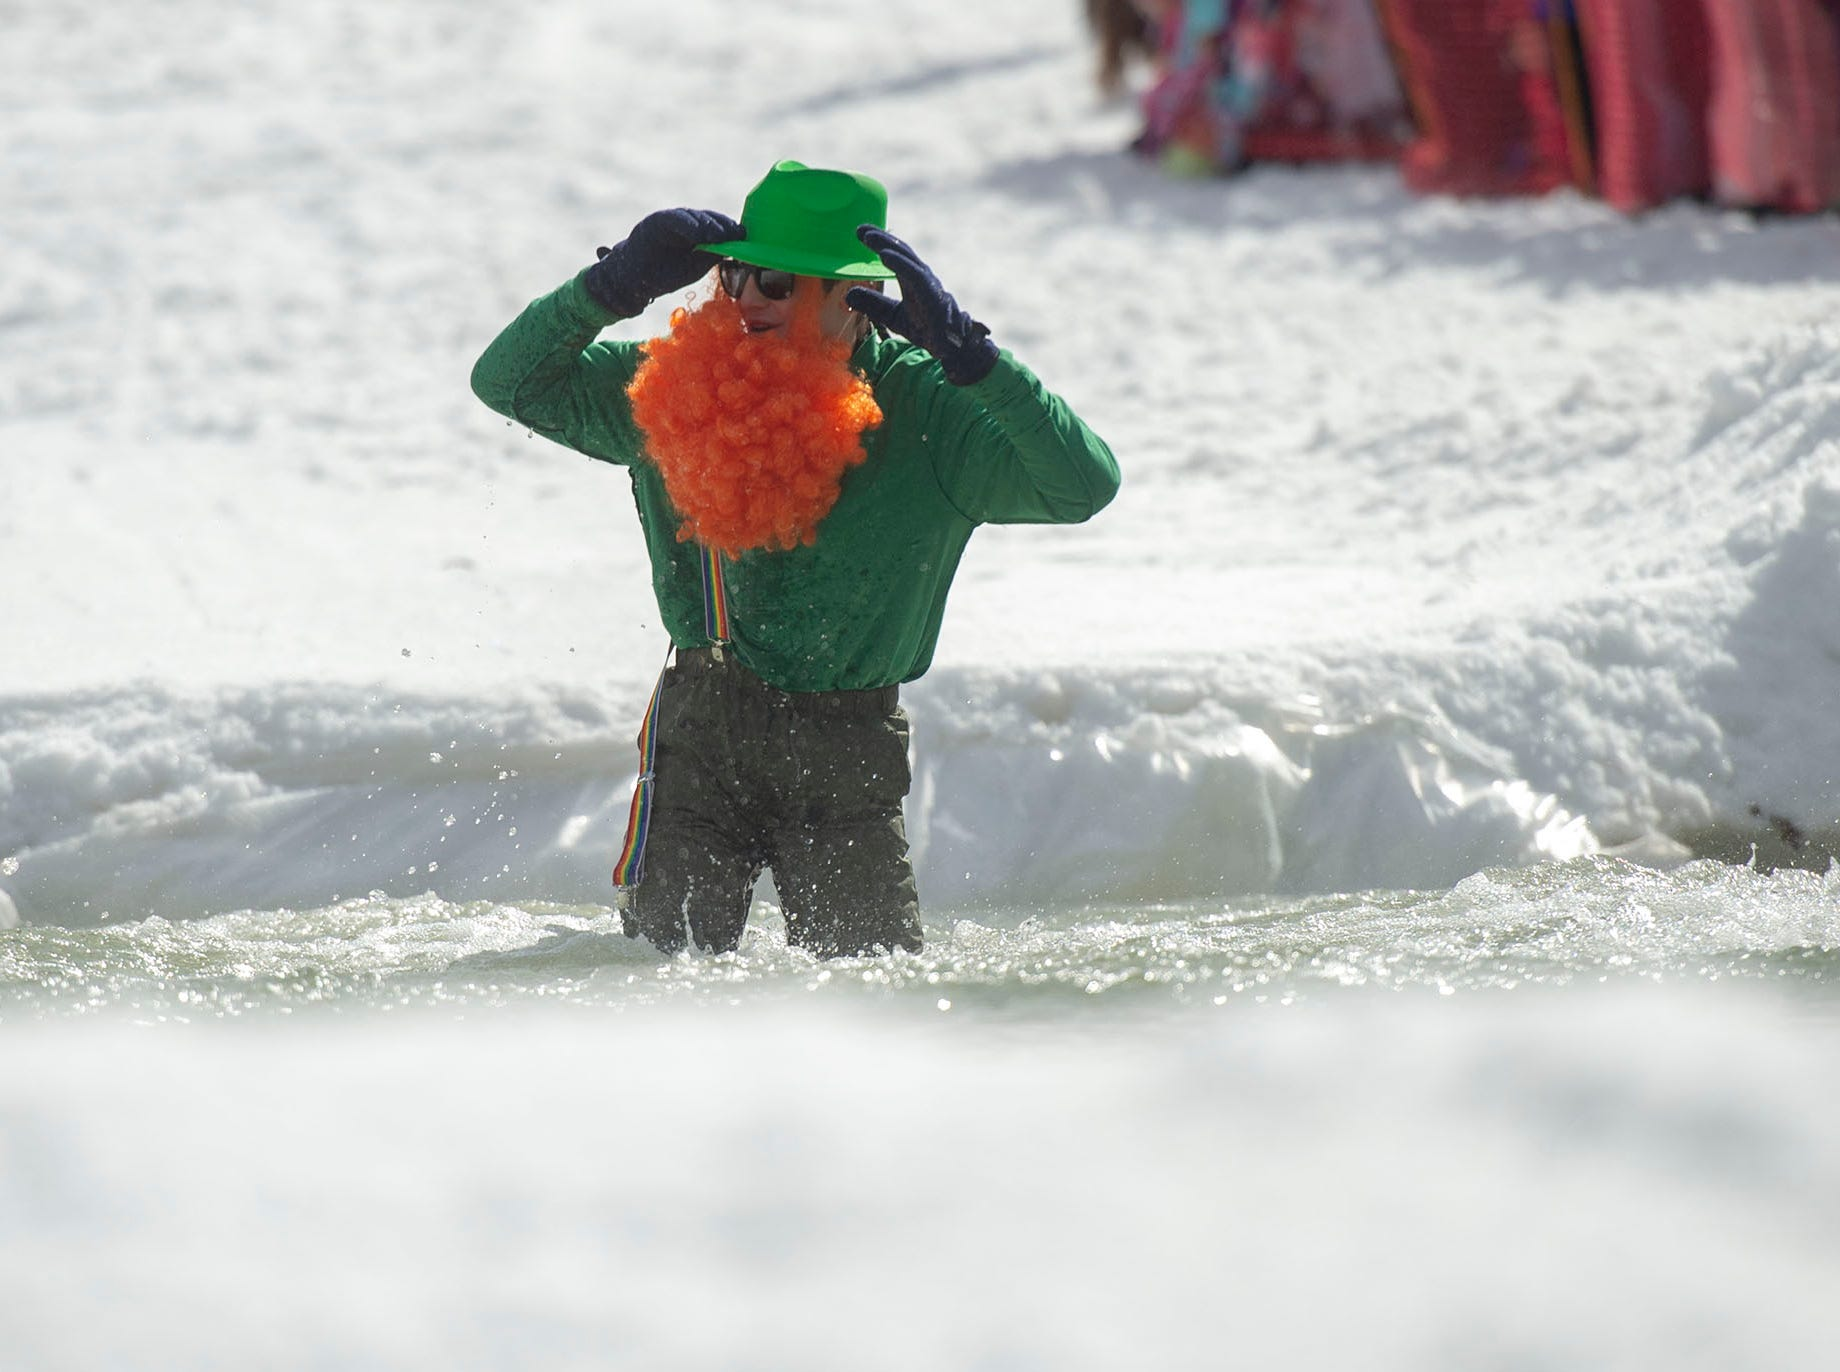 This wasn't the way this leprechaun anticipated his pond skimming run to go at Roundtop Mountain Resort on Saturday, March 16, 2019.